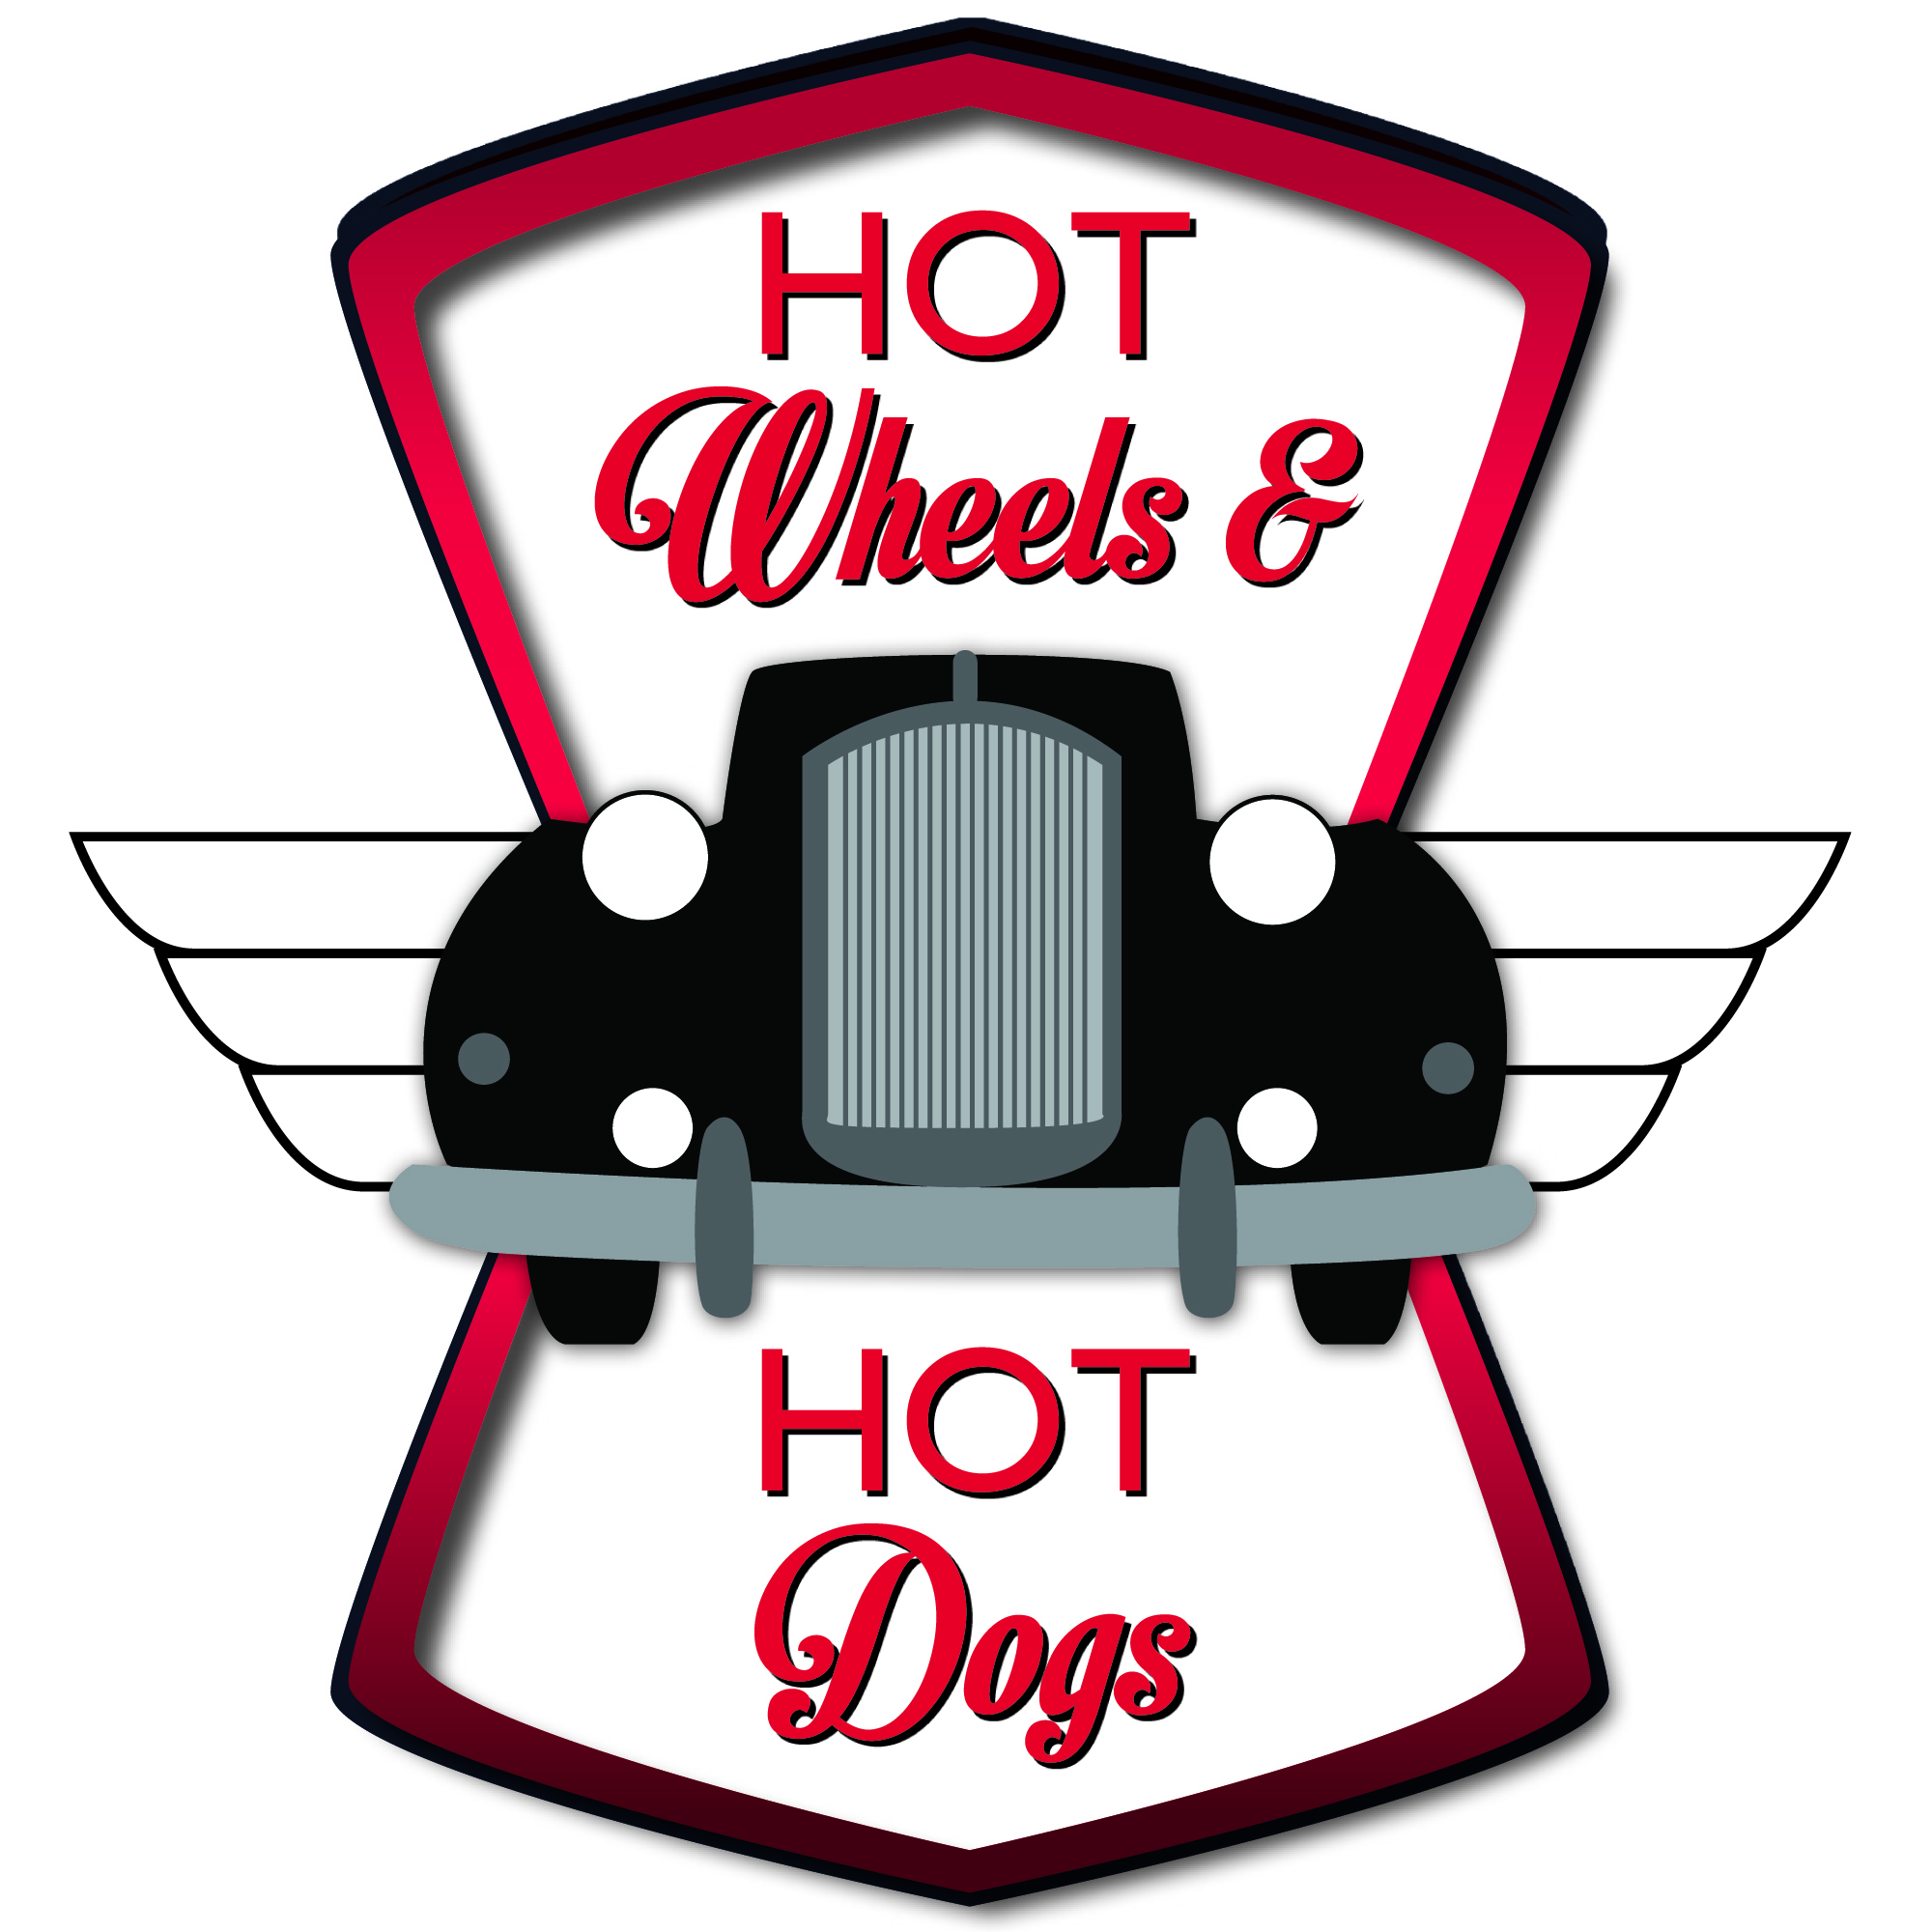 Hot Wheels clipart car show Dogs Hot and Hot Registration